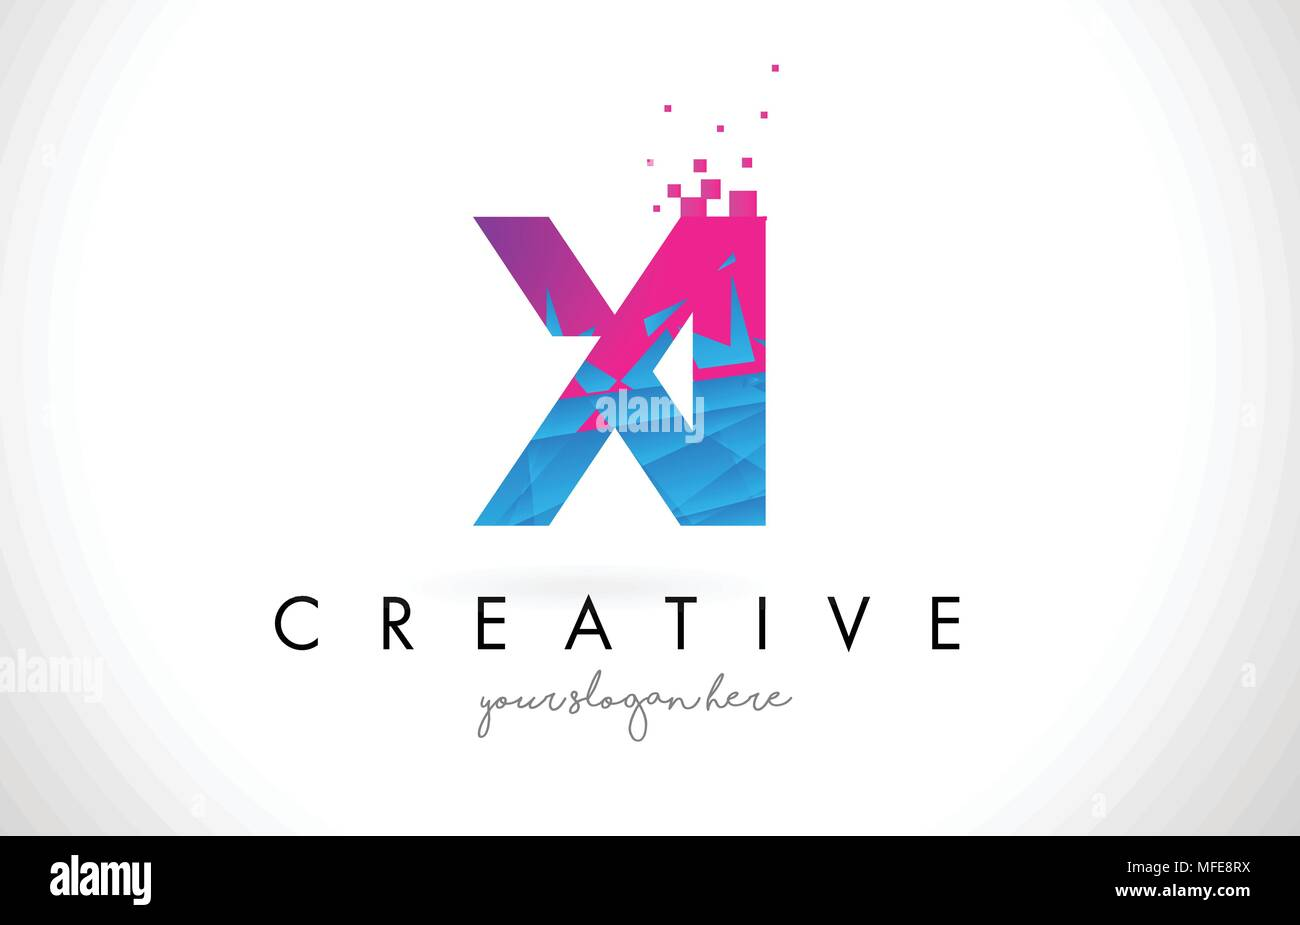 XI X I Letter Logo with Broken Shattered Blue Pink Triangles Texture Design Vector Illustration. - Stock Vector